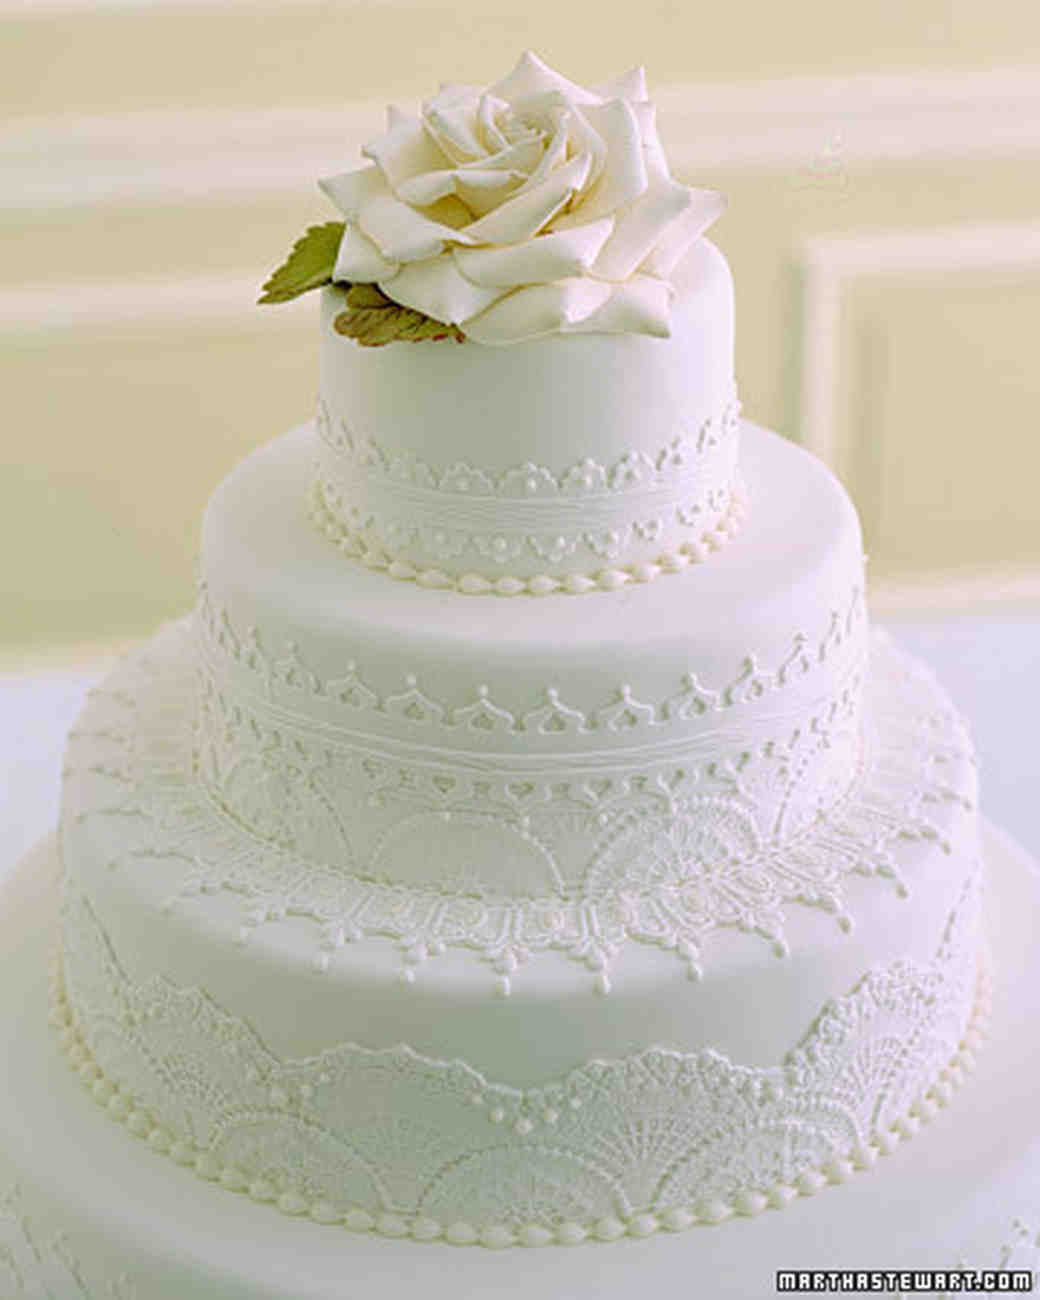 Traditional Wedding Cakes Martha Stewart Weddings - Old Fashioned Wedding Cake